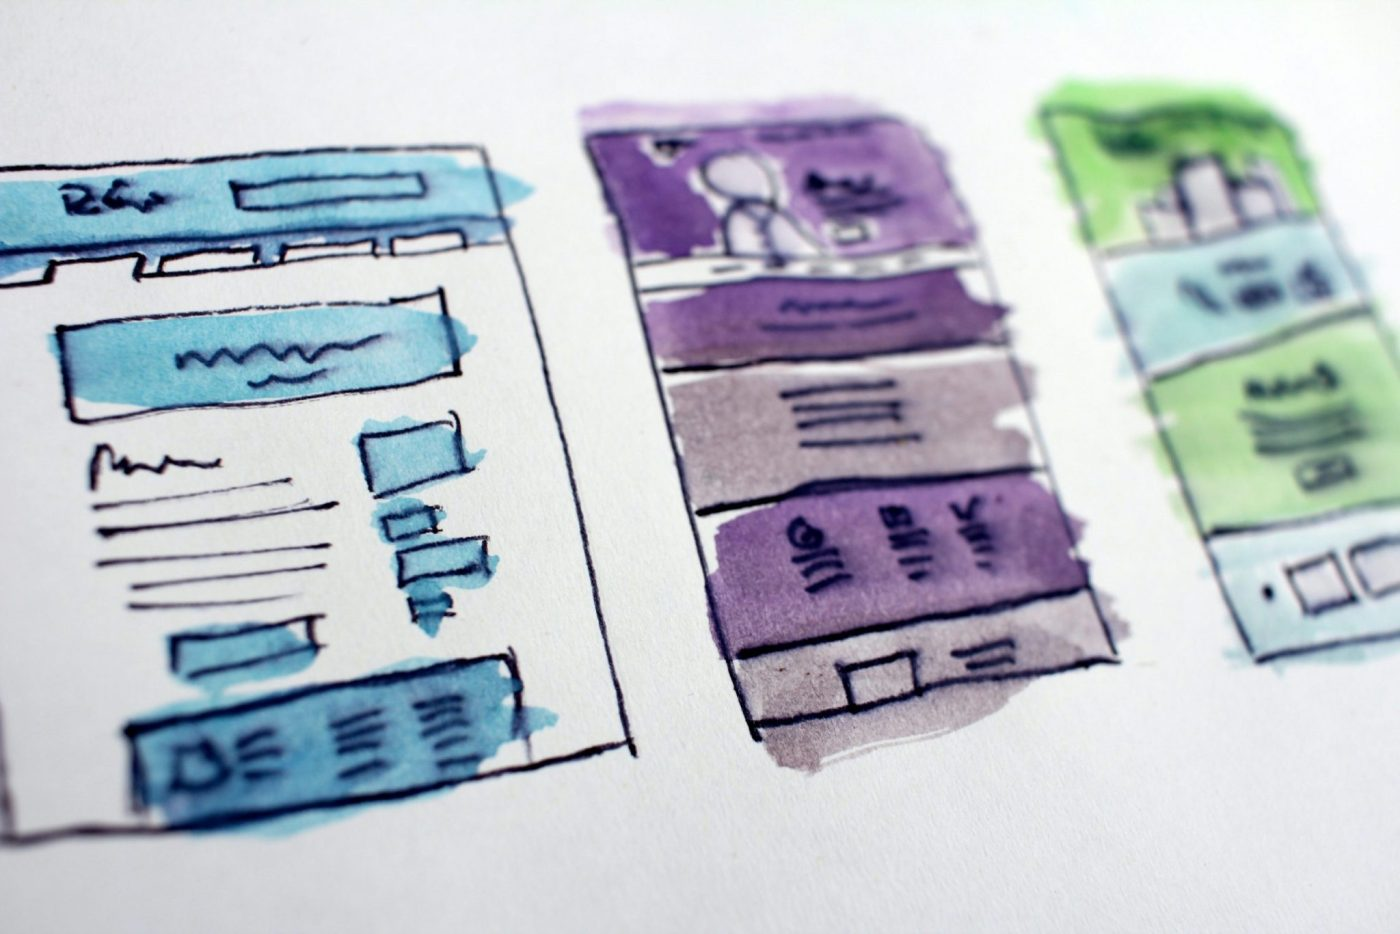 Illustrations of a website layout